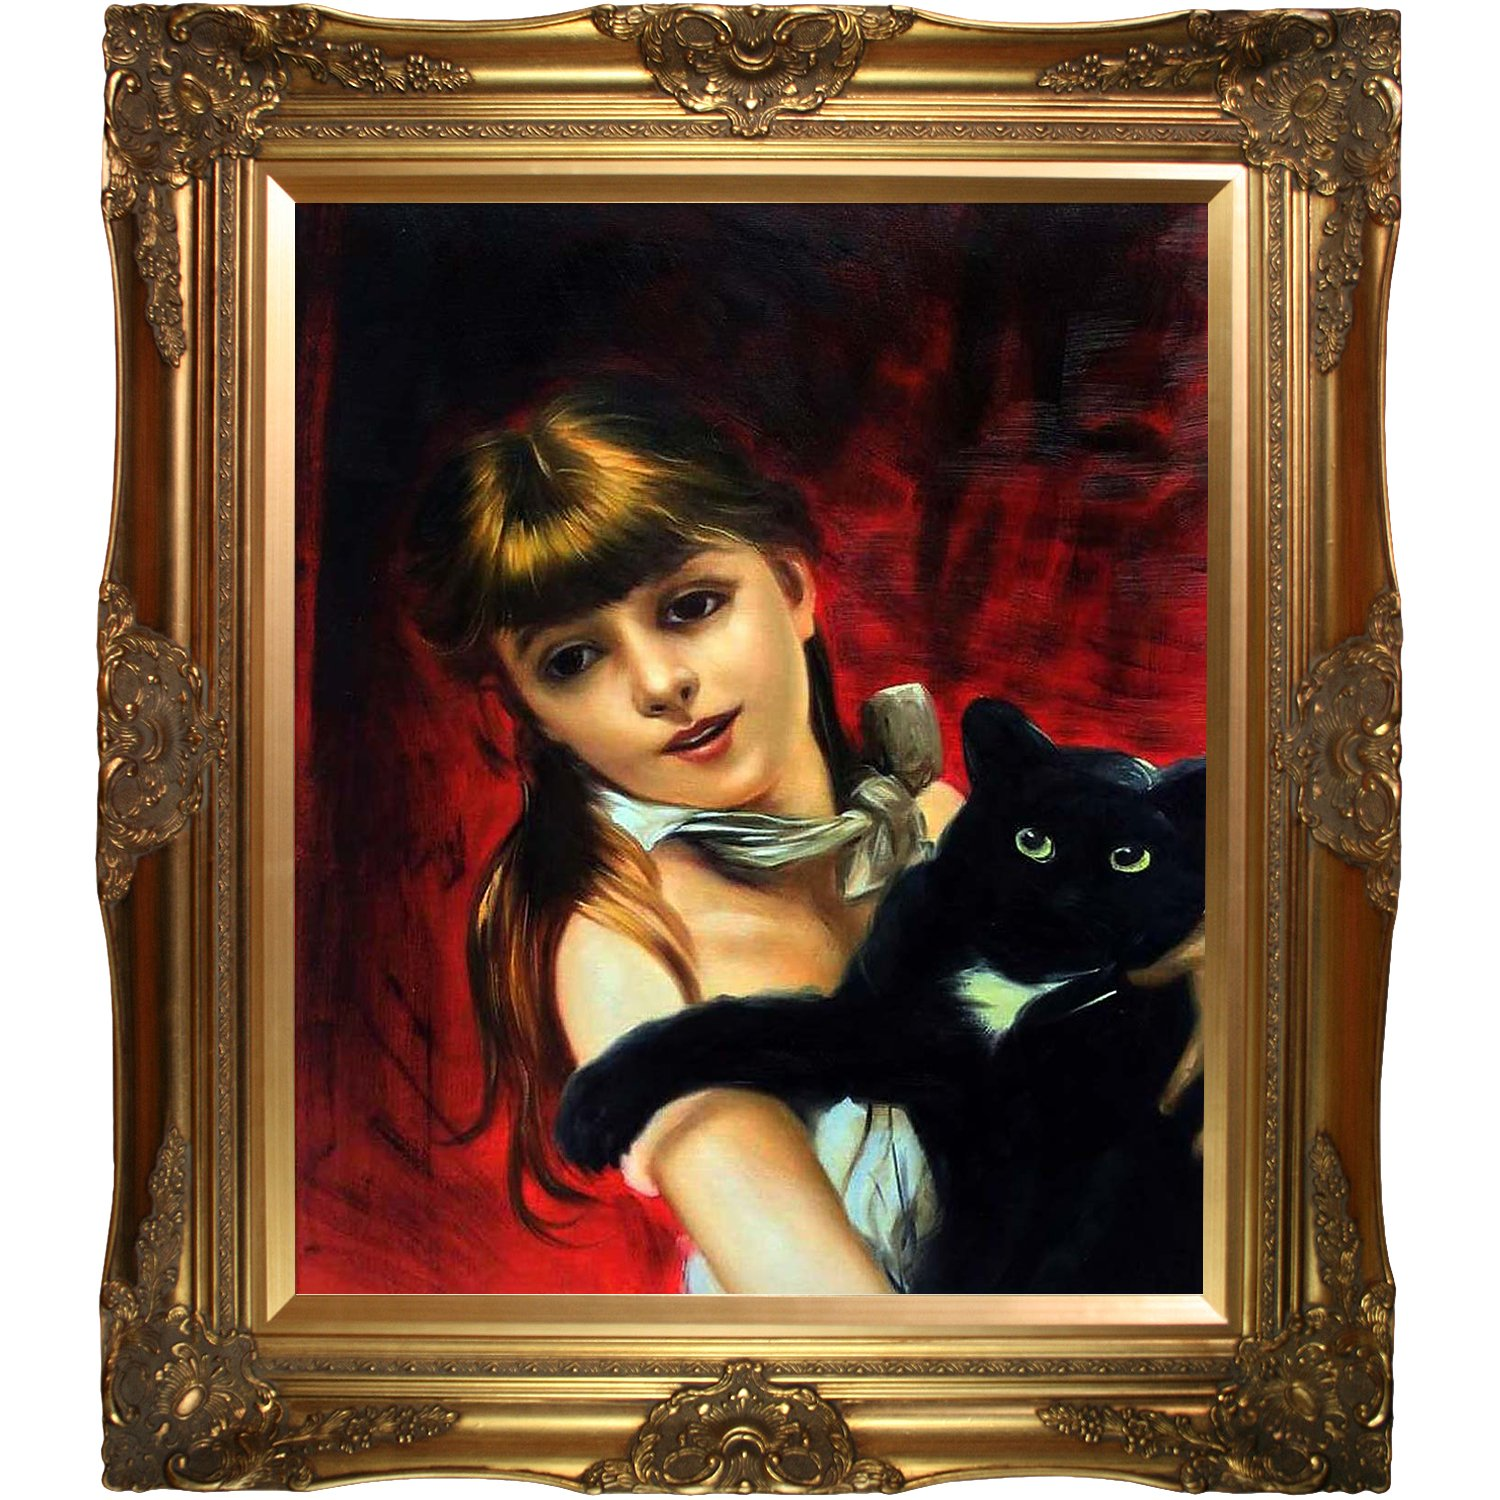 overstockArt Girl with Black Cat Hand Painted Oil with Victorian Gold Frame 1885 by Giovanni Boldini